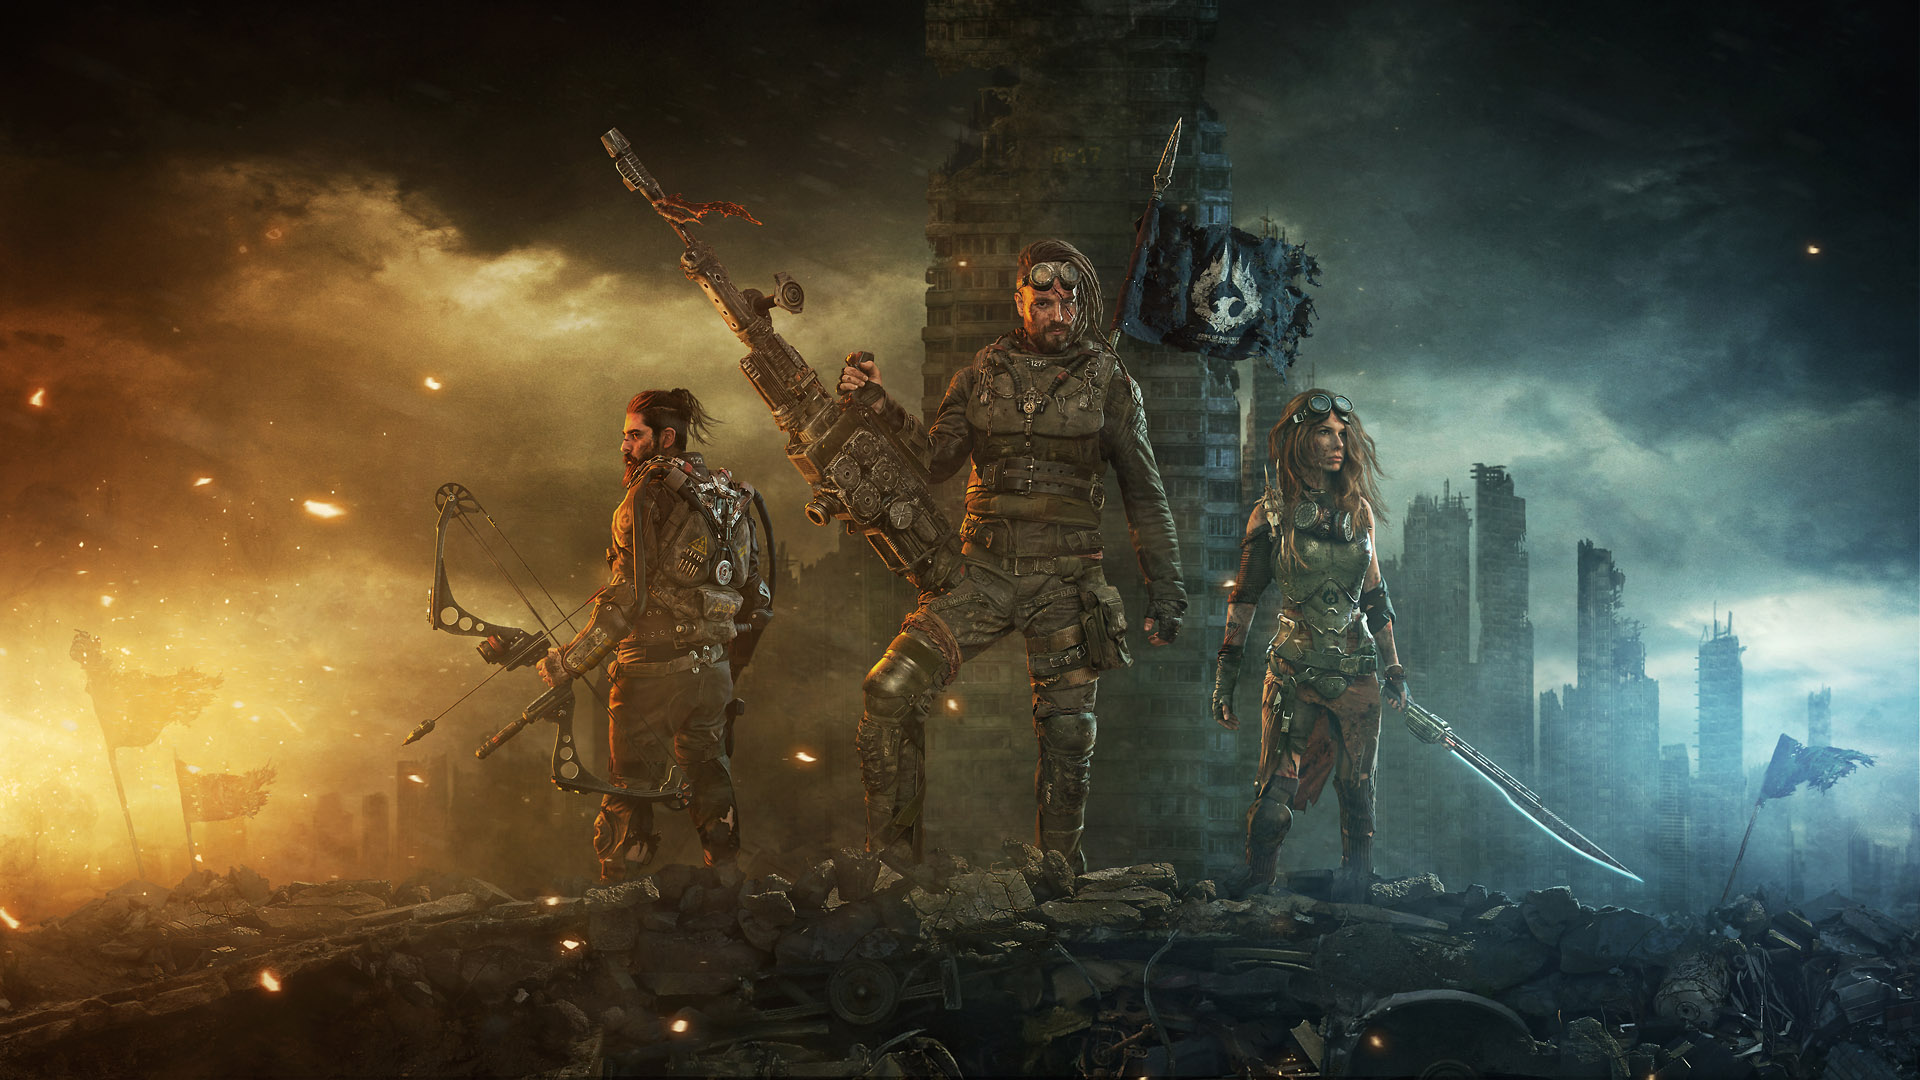 post-apo-tactical-strategy-game-dustwind-goes-into-full-release